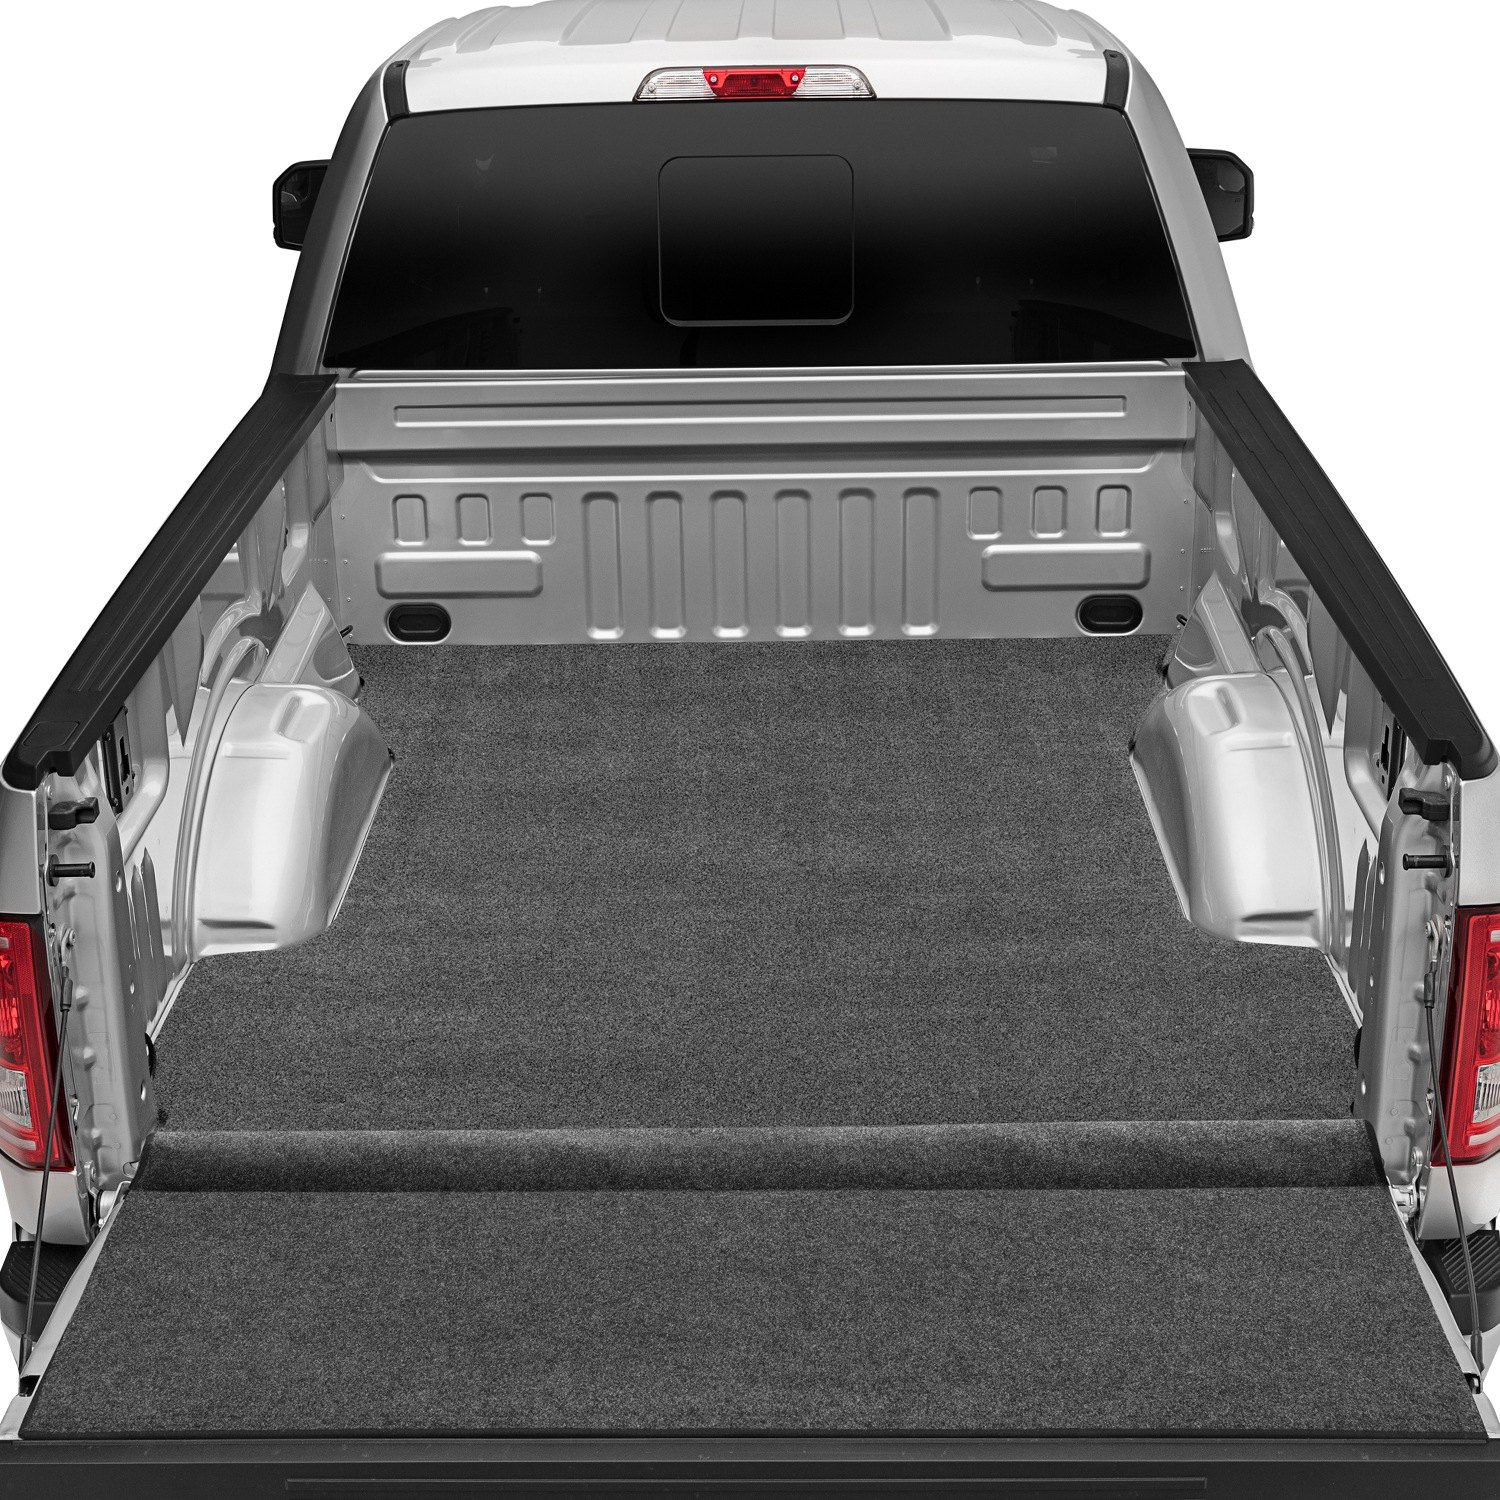 Bedrug 174 Ford F 250 2017 Xlt Bed Mat For Non Or Spray In